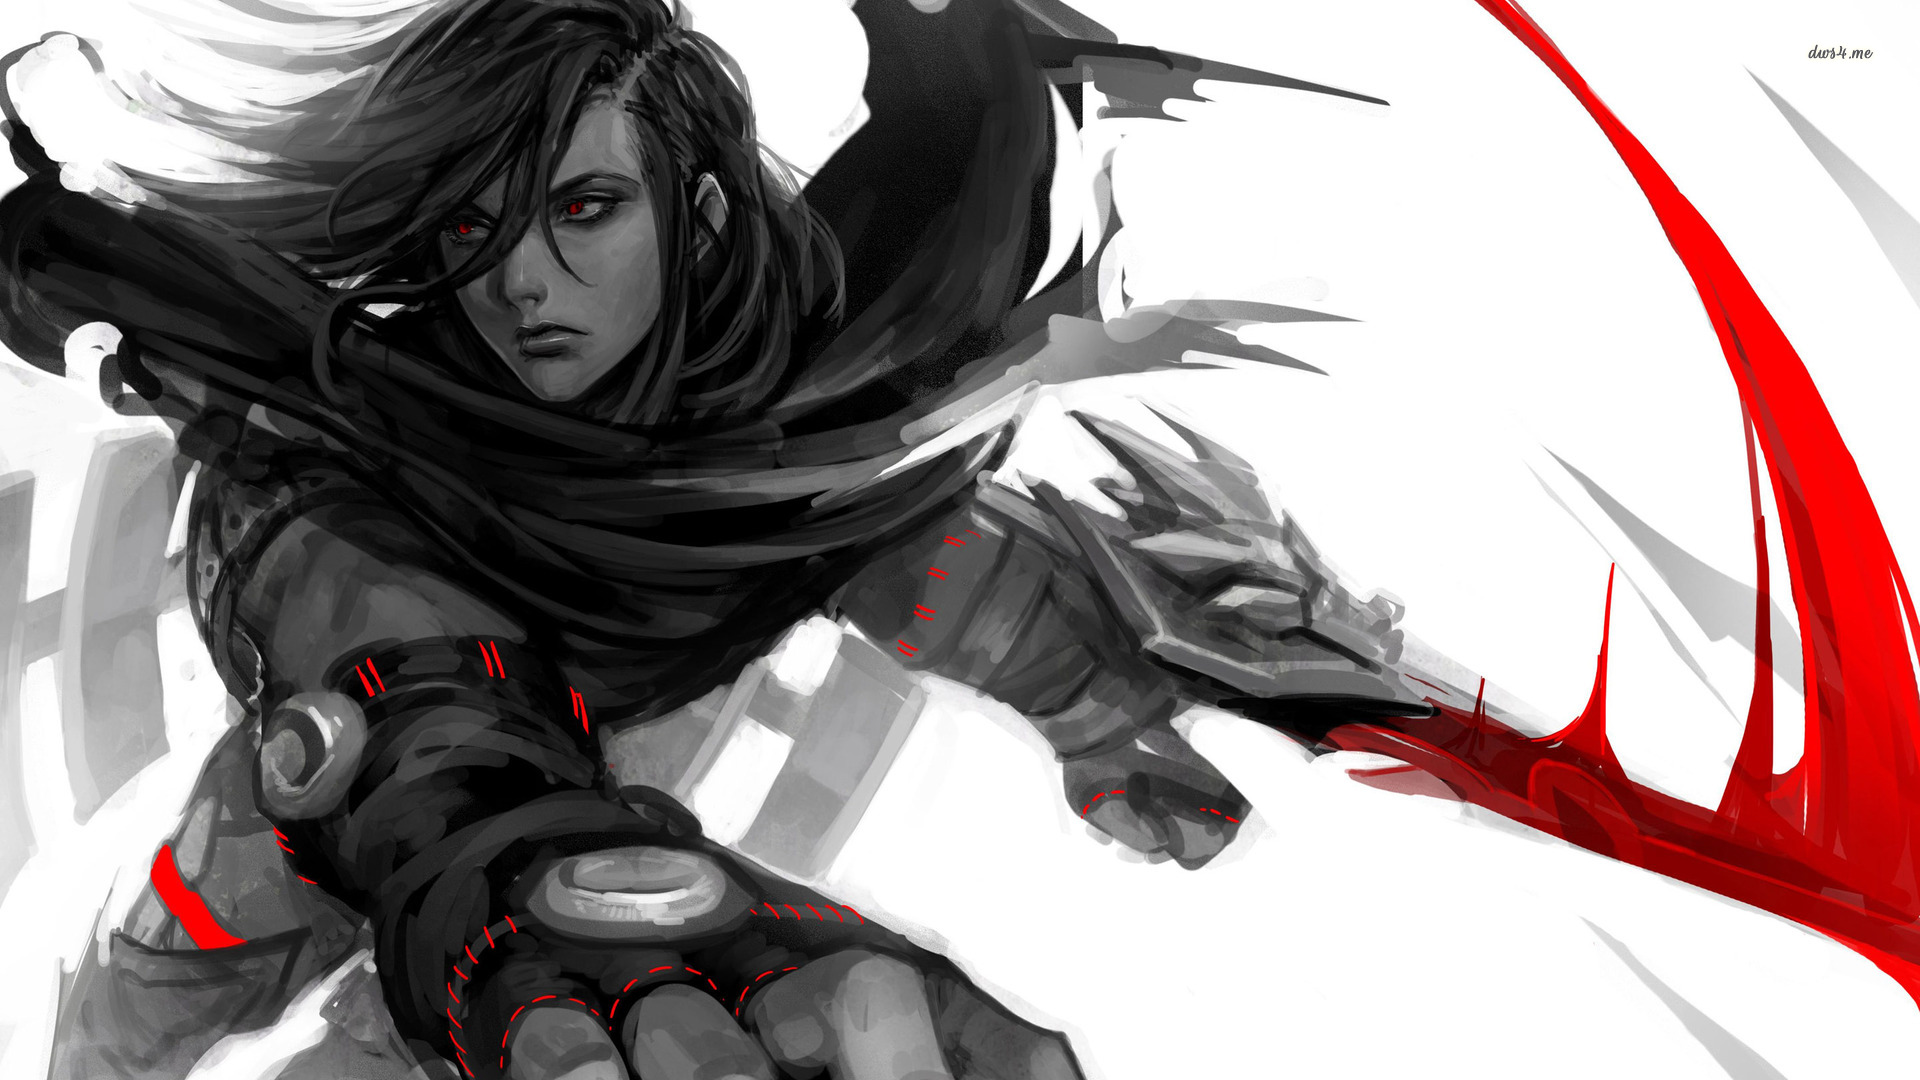 High Resolution Wallpaper | Talon 1920x1080 px